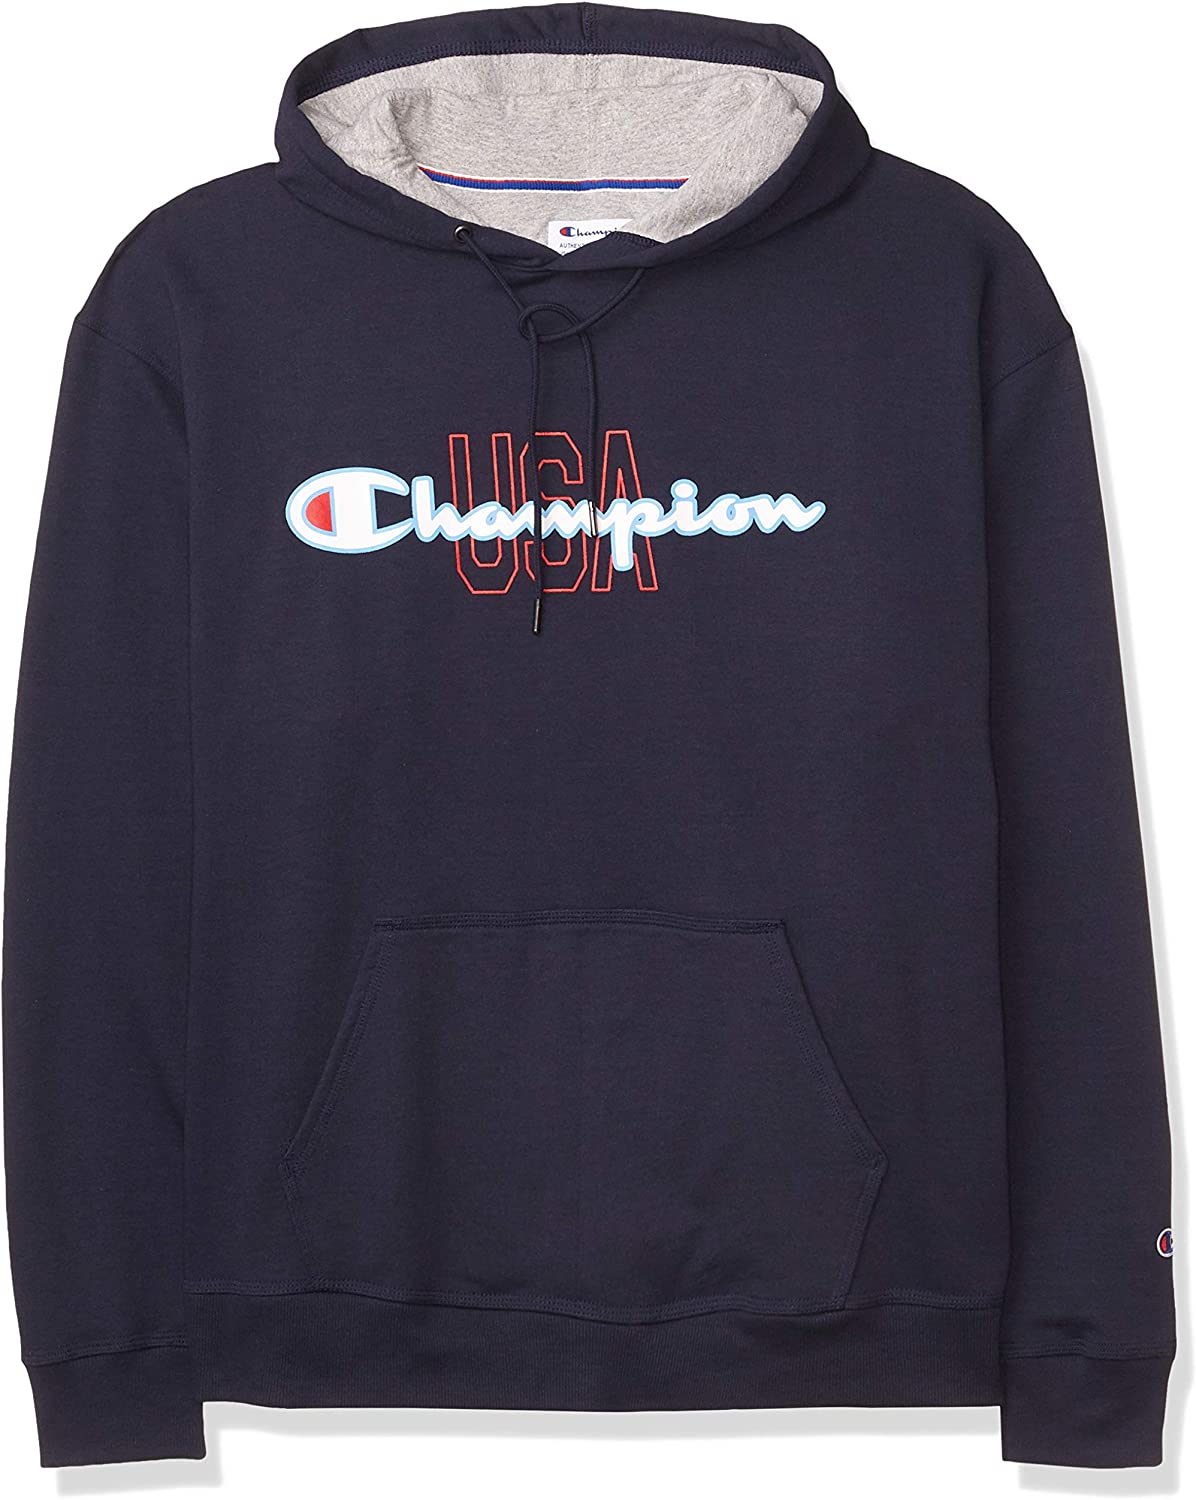 Champion Men's Powerblend Fleece 67% OFF of fixed Max 52% OFF price Hoodie USA Pullover